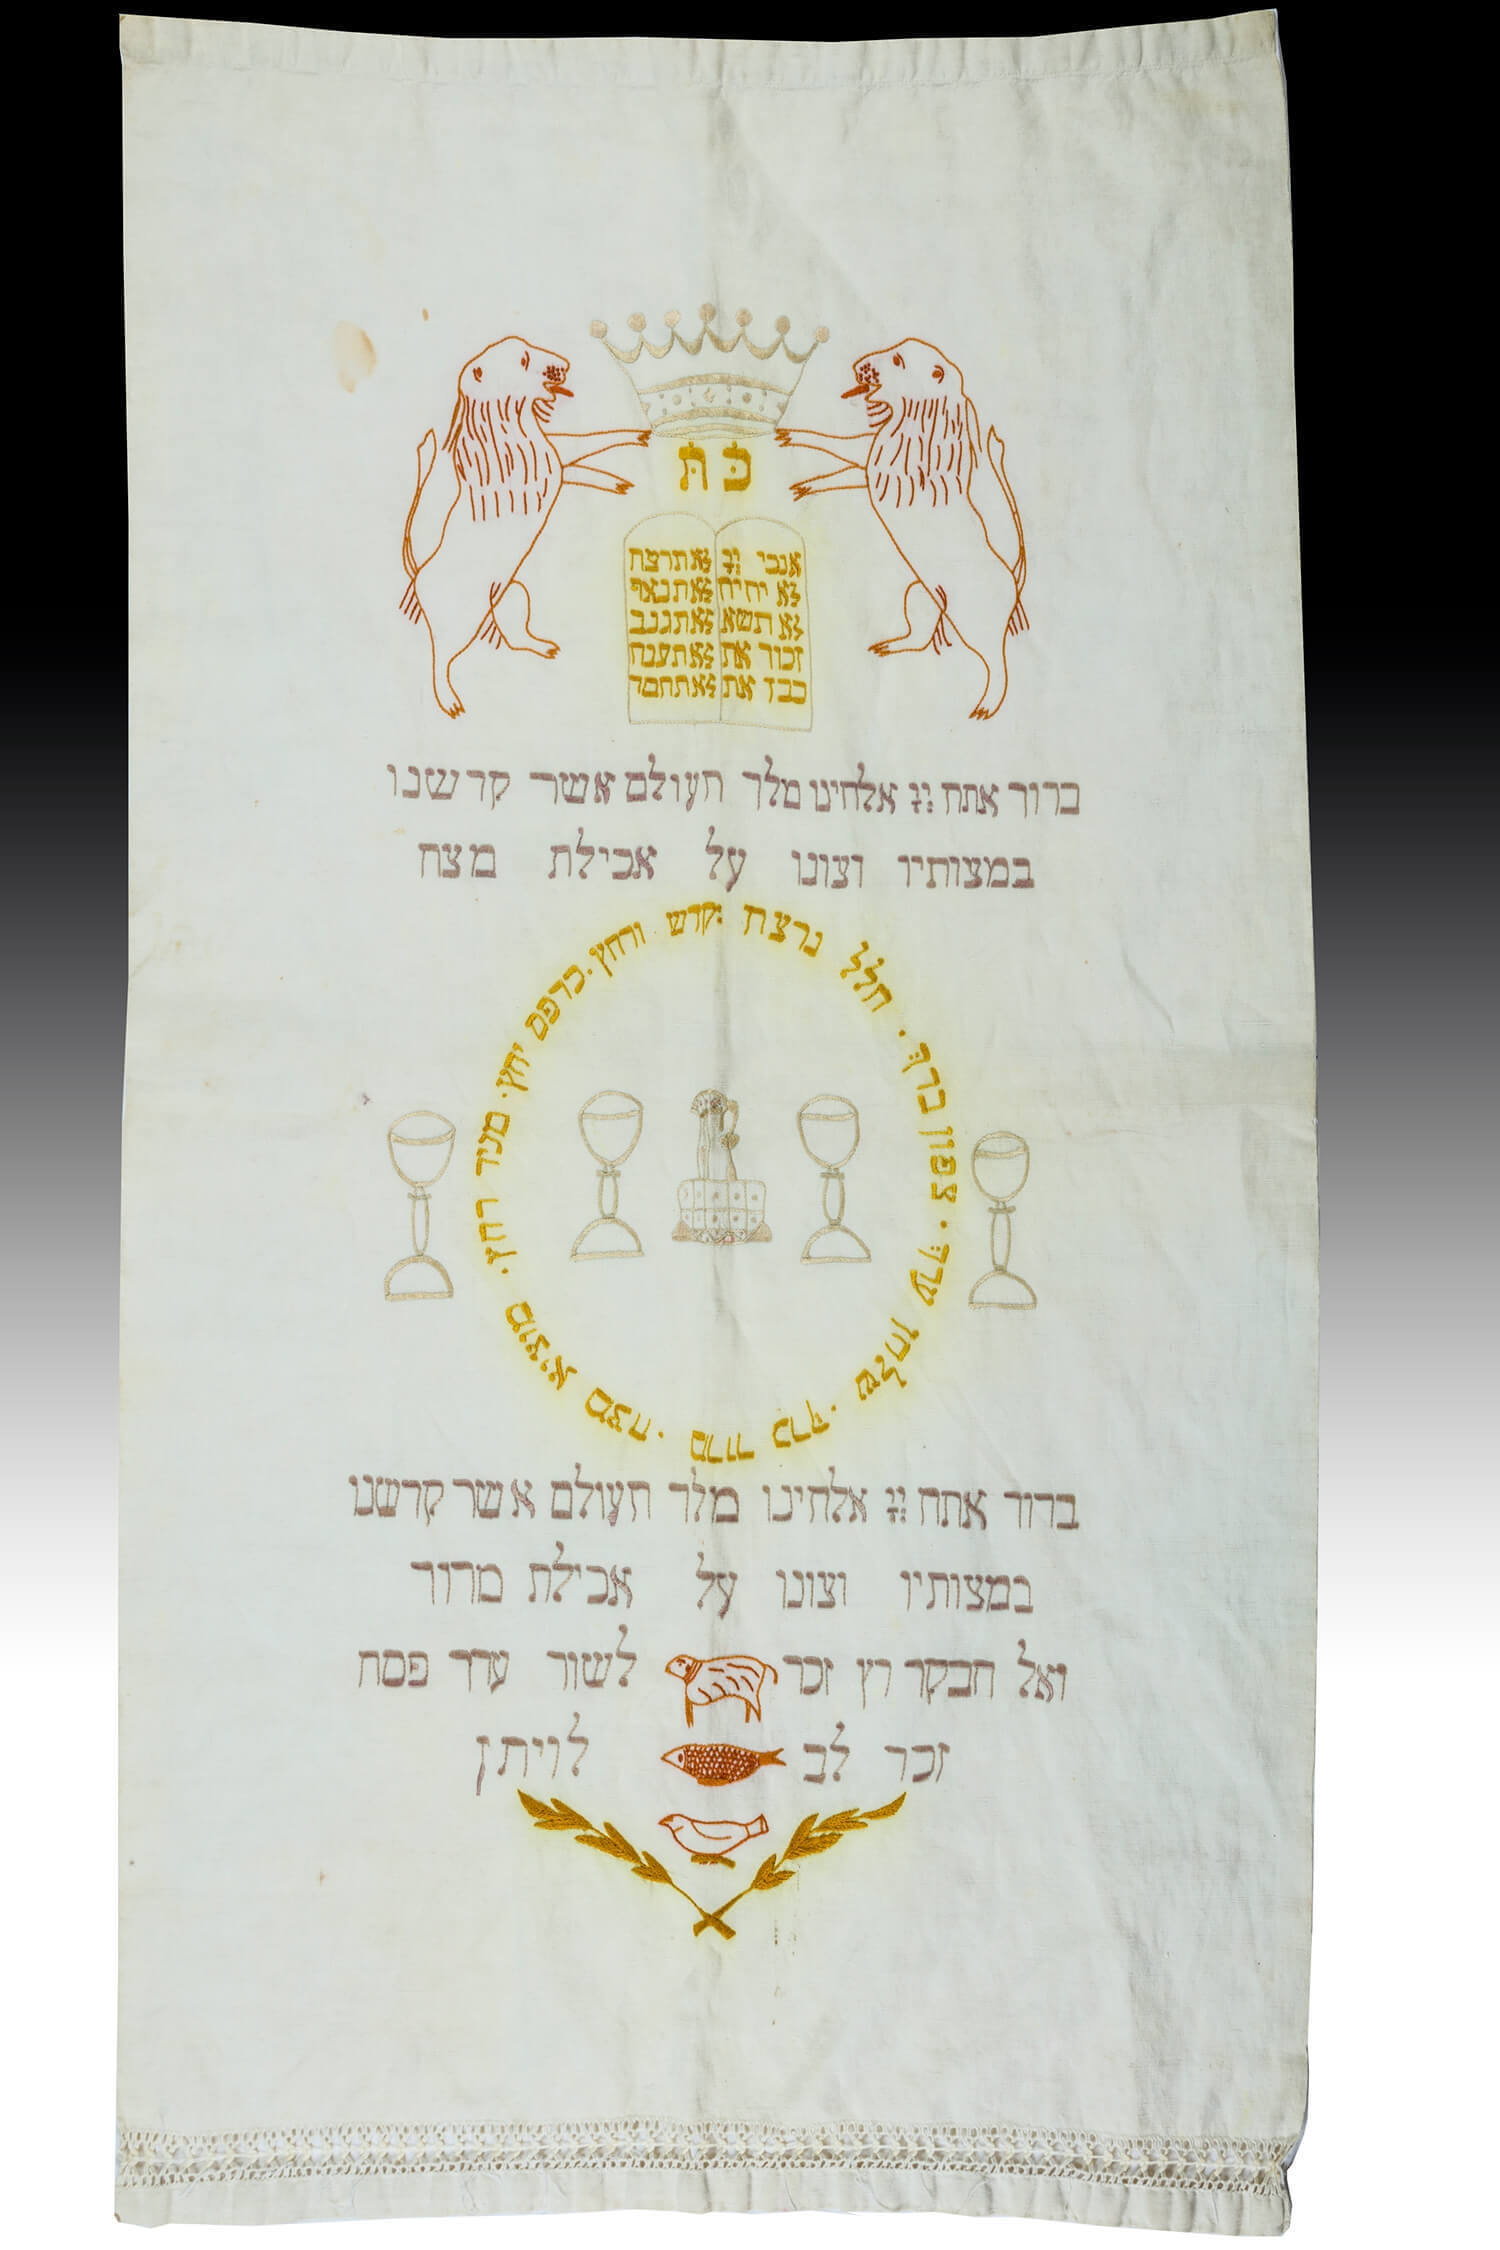 026. AN EMBROIDERED PASSOVER BANNER